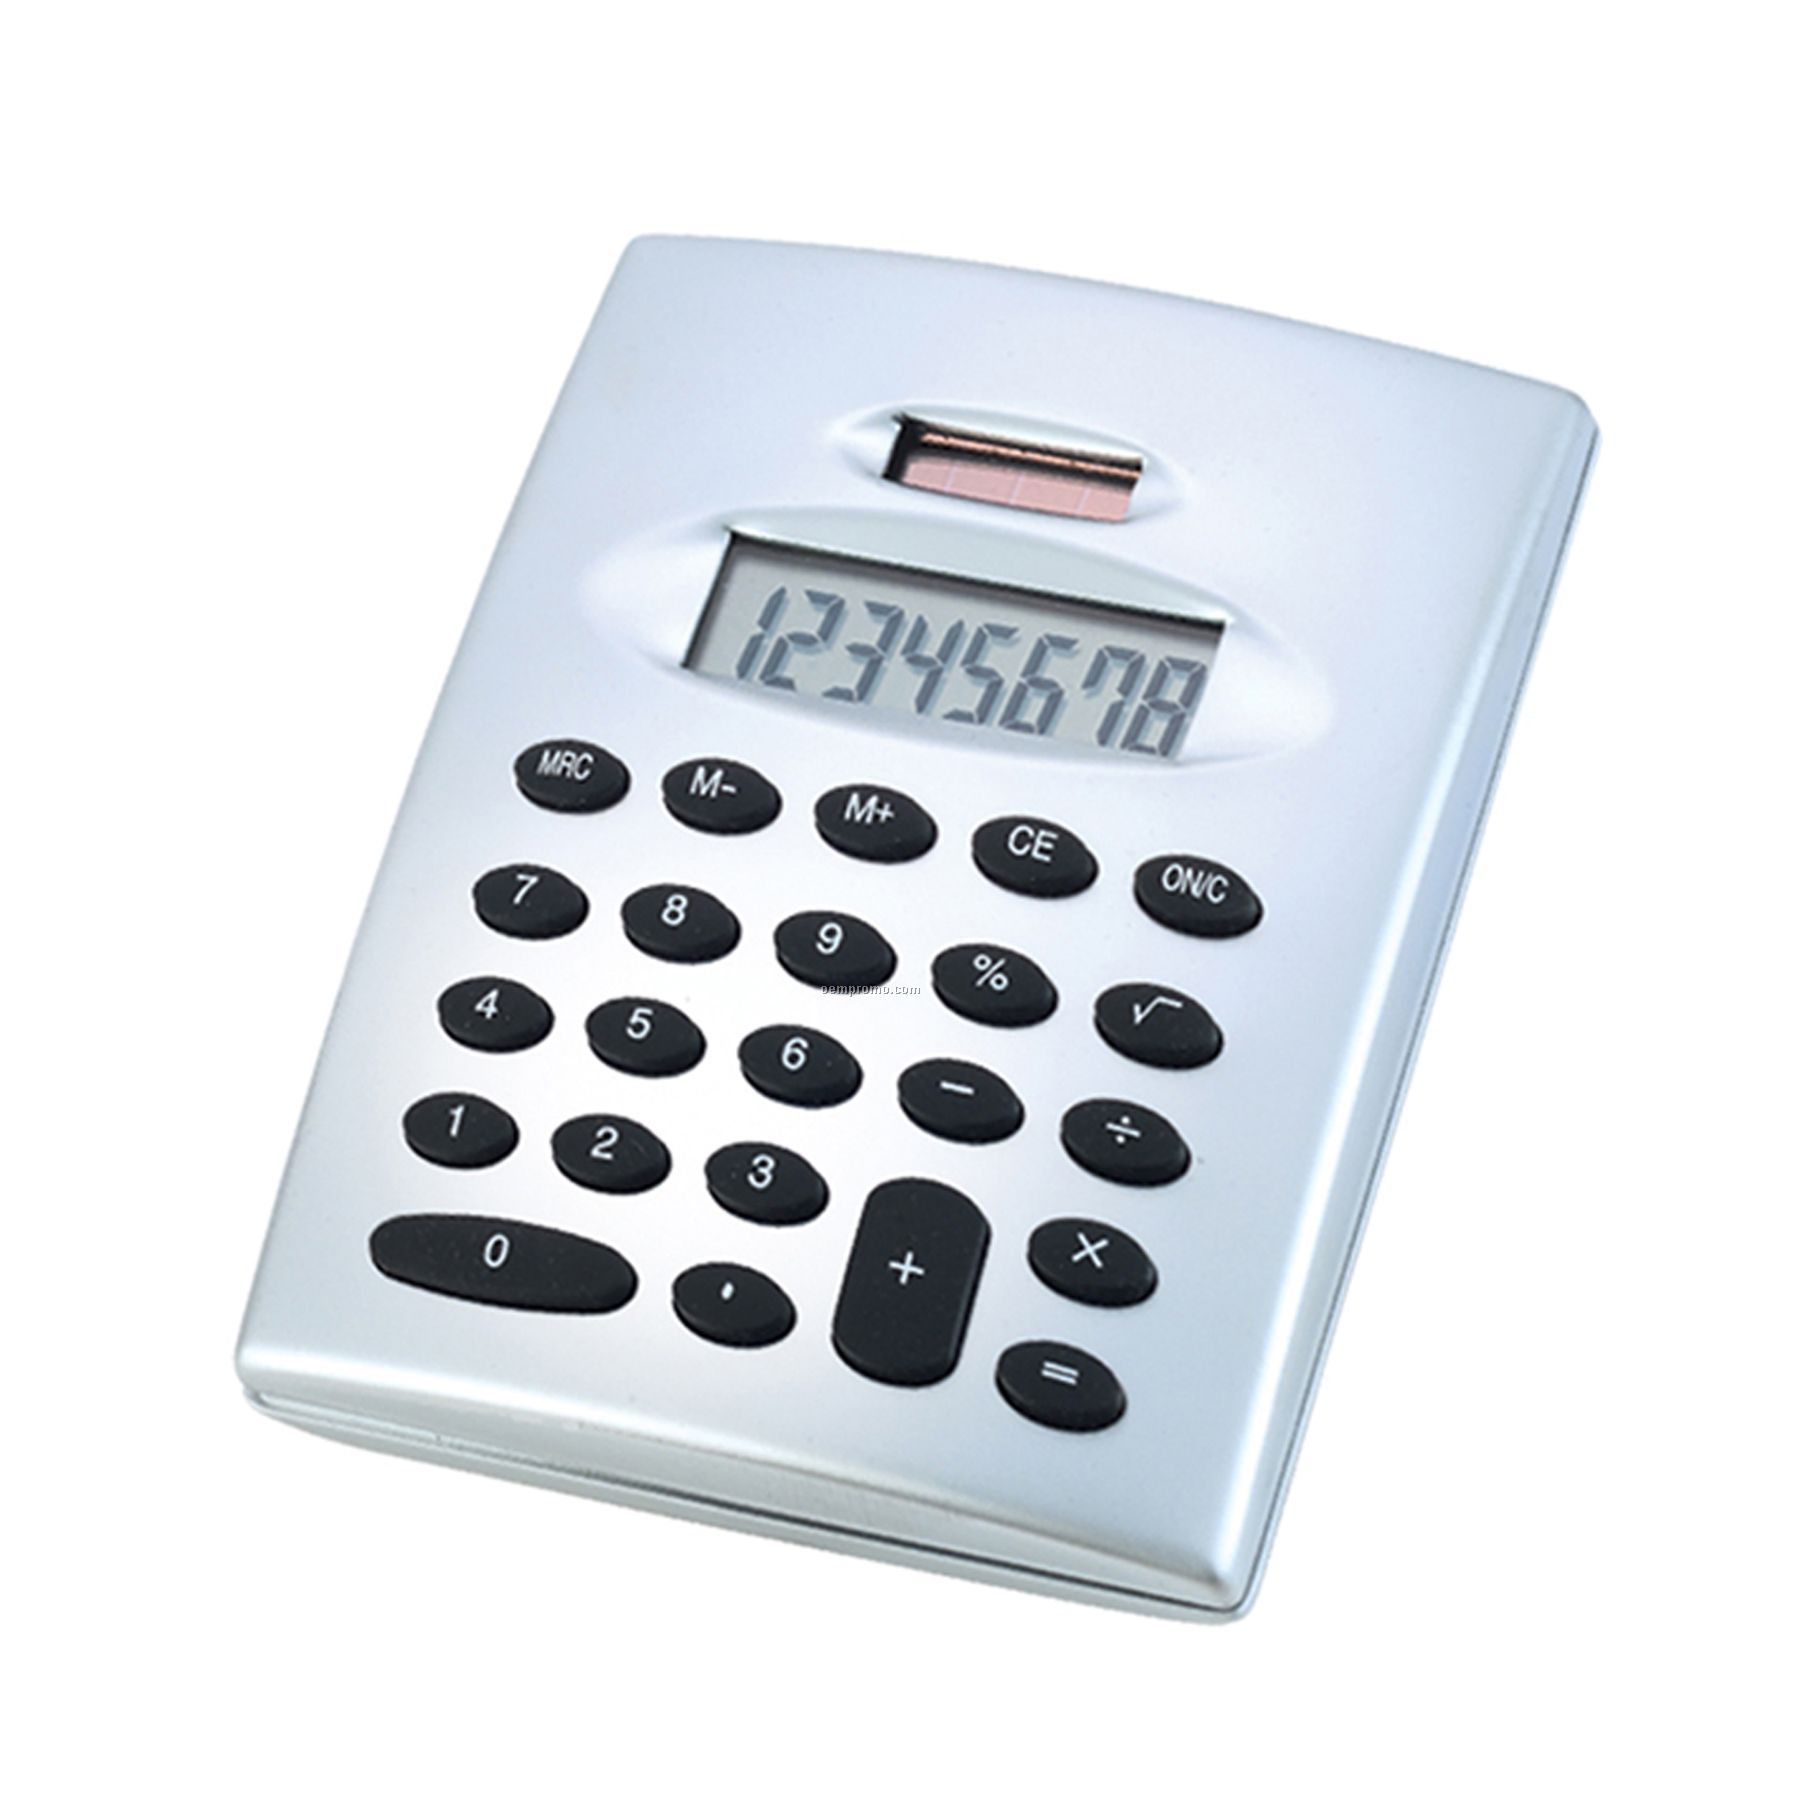 Desk Calculator W/ Currency Converter